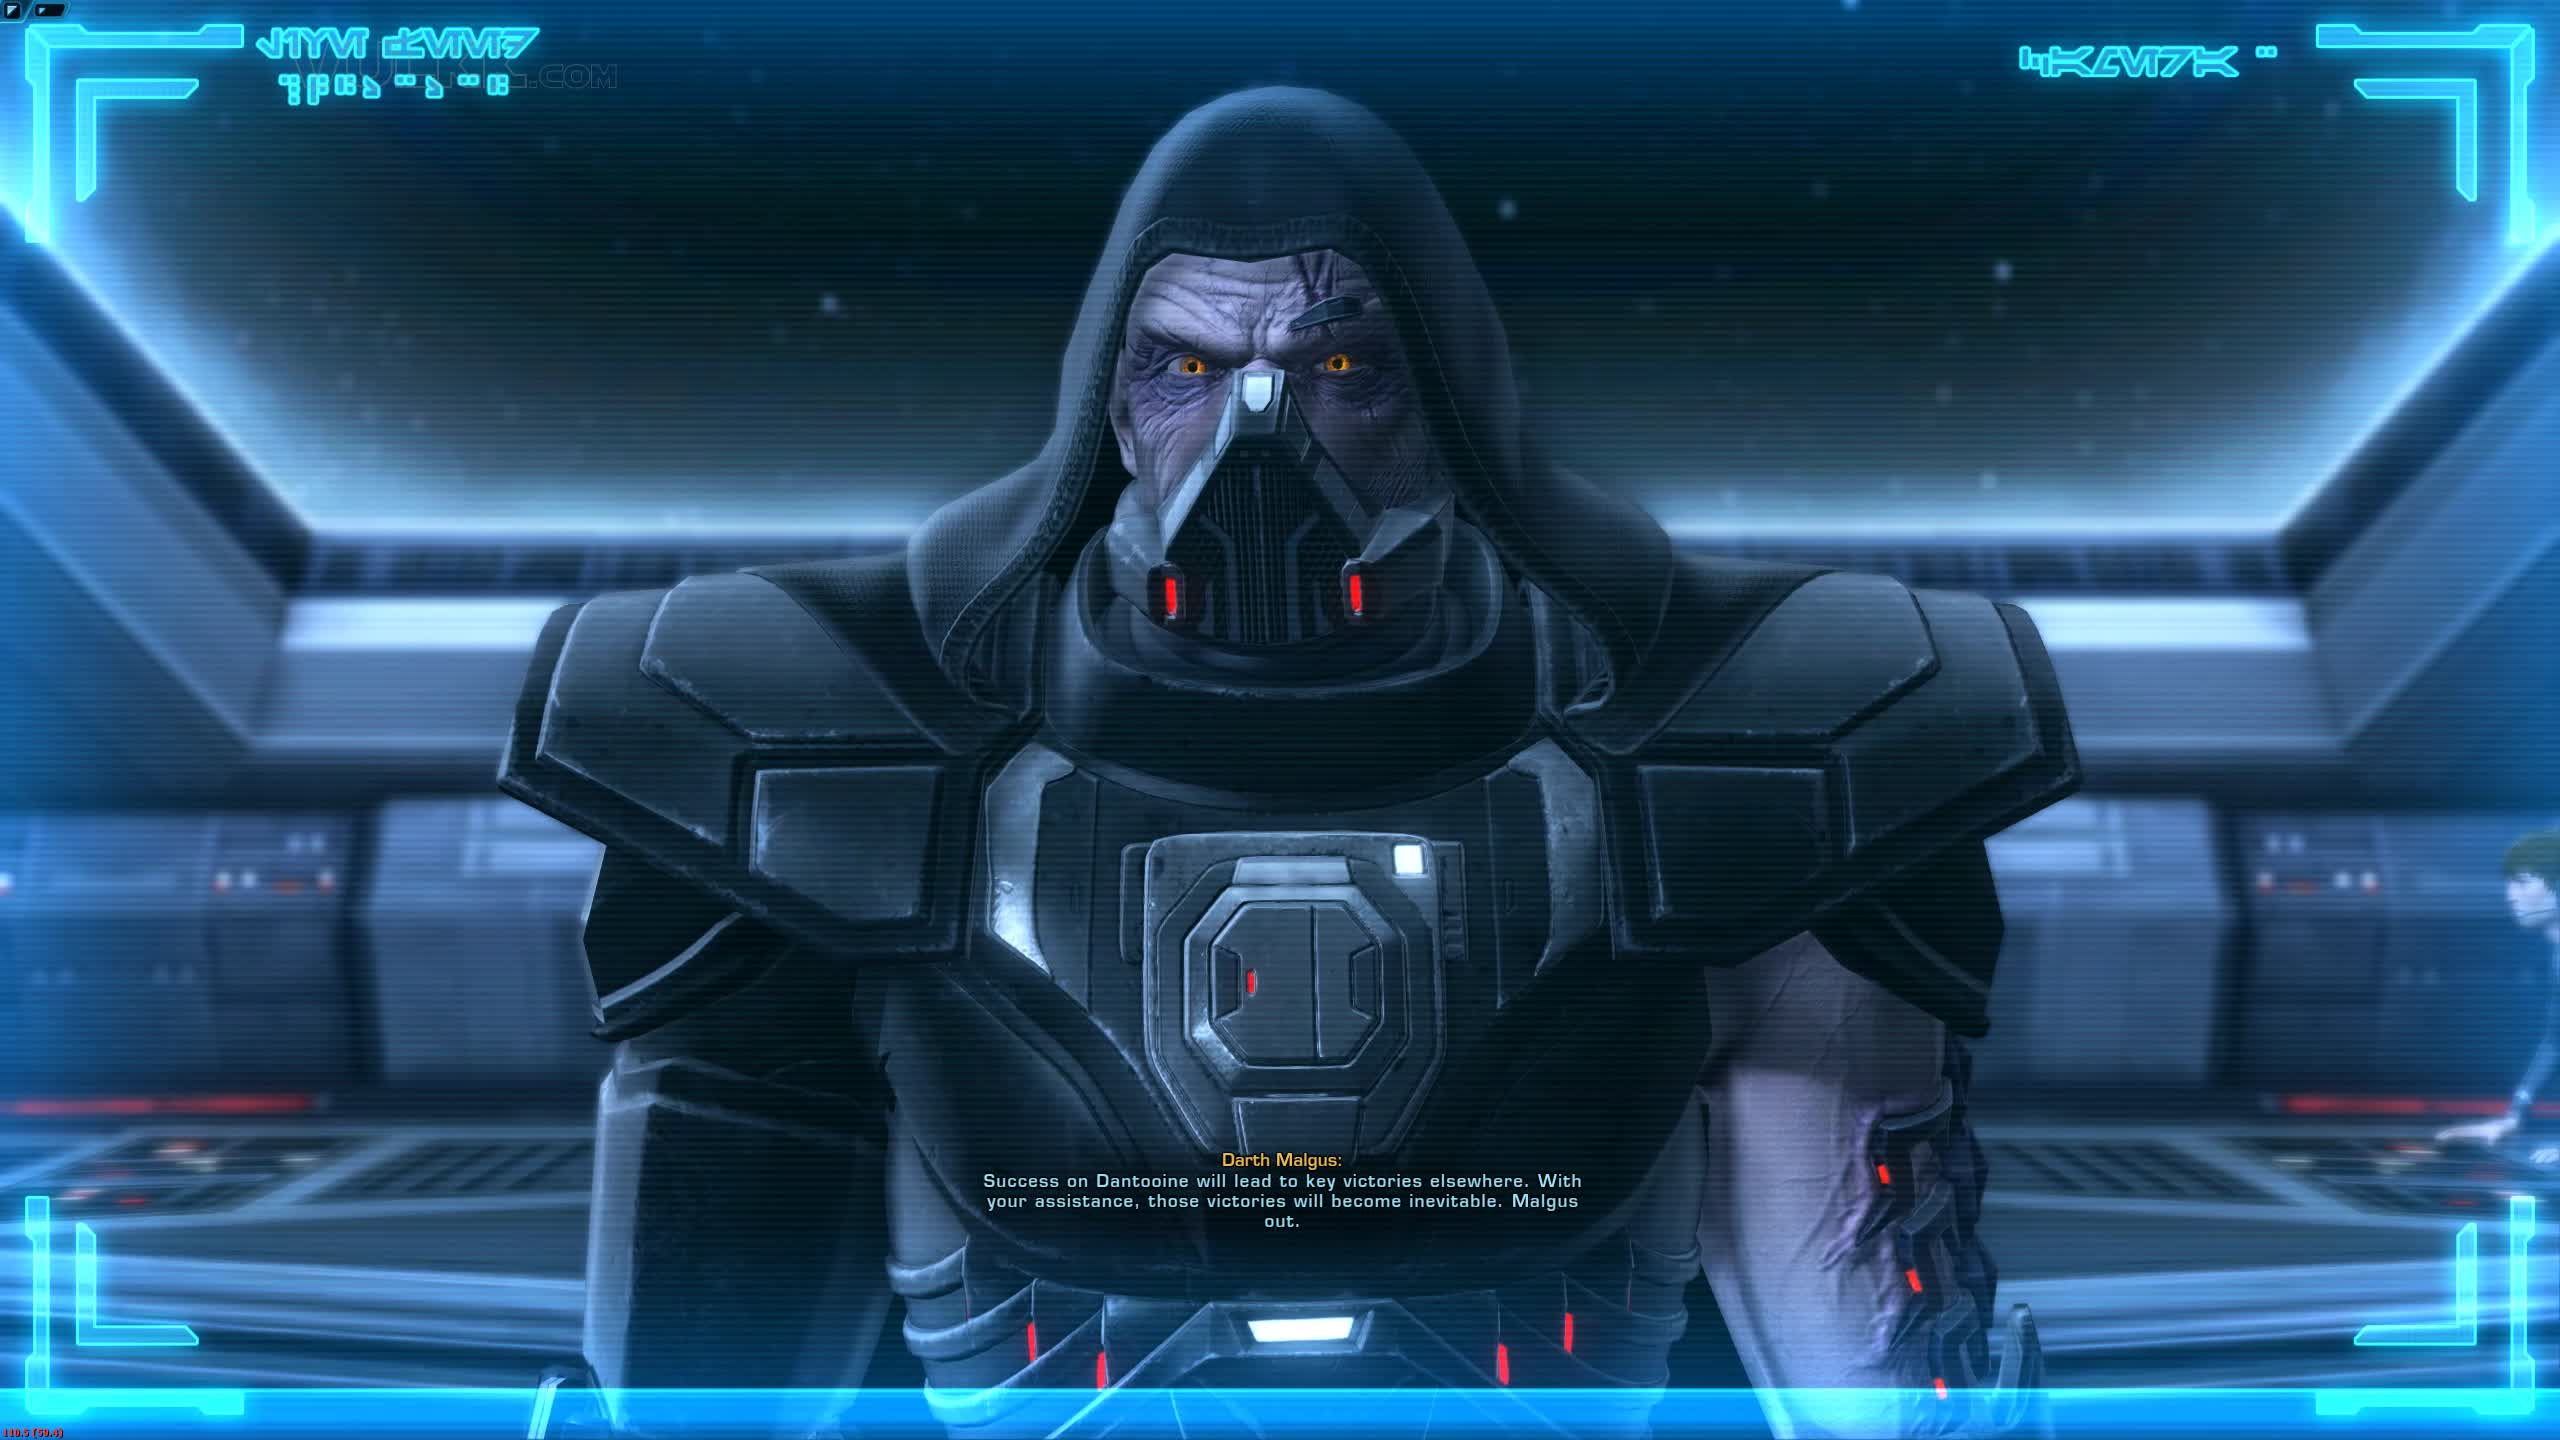 Swtor Dantooine Event Missions And Achievements Guide Vulkkcom